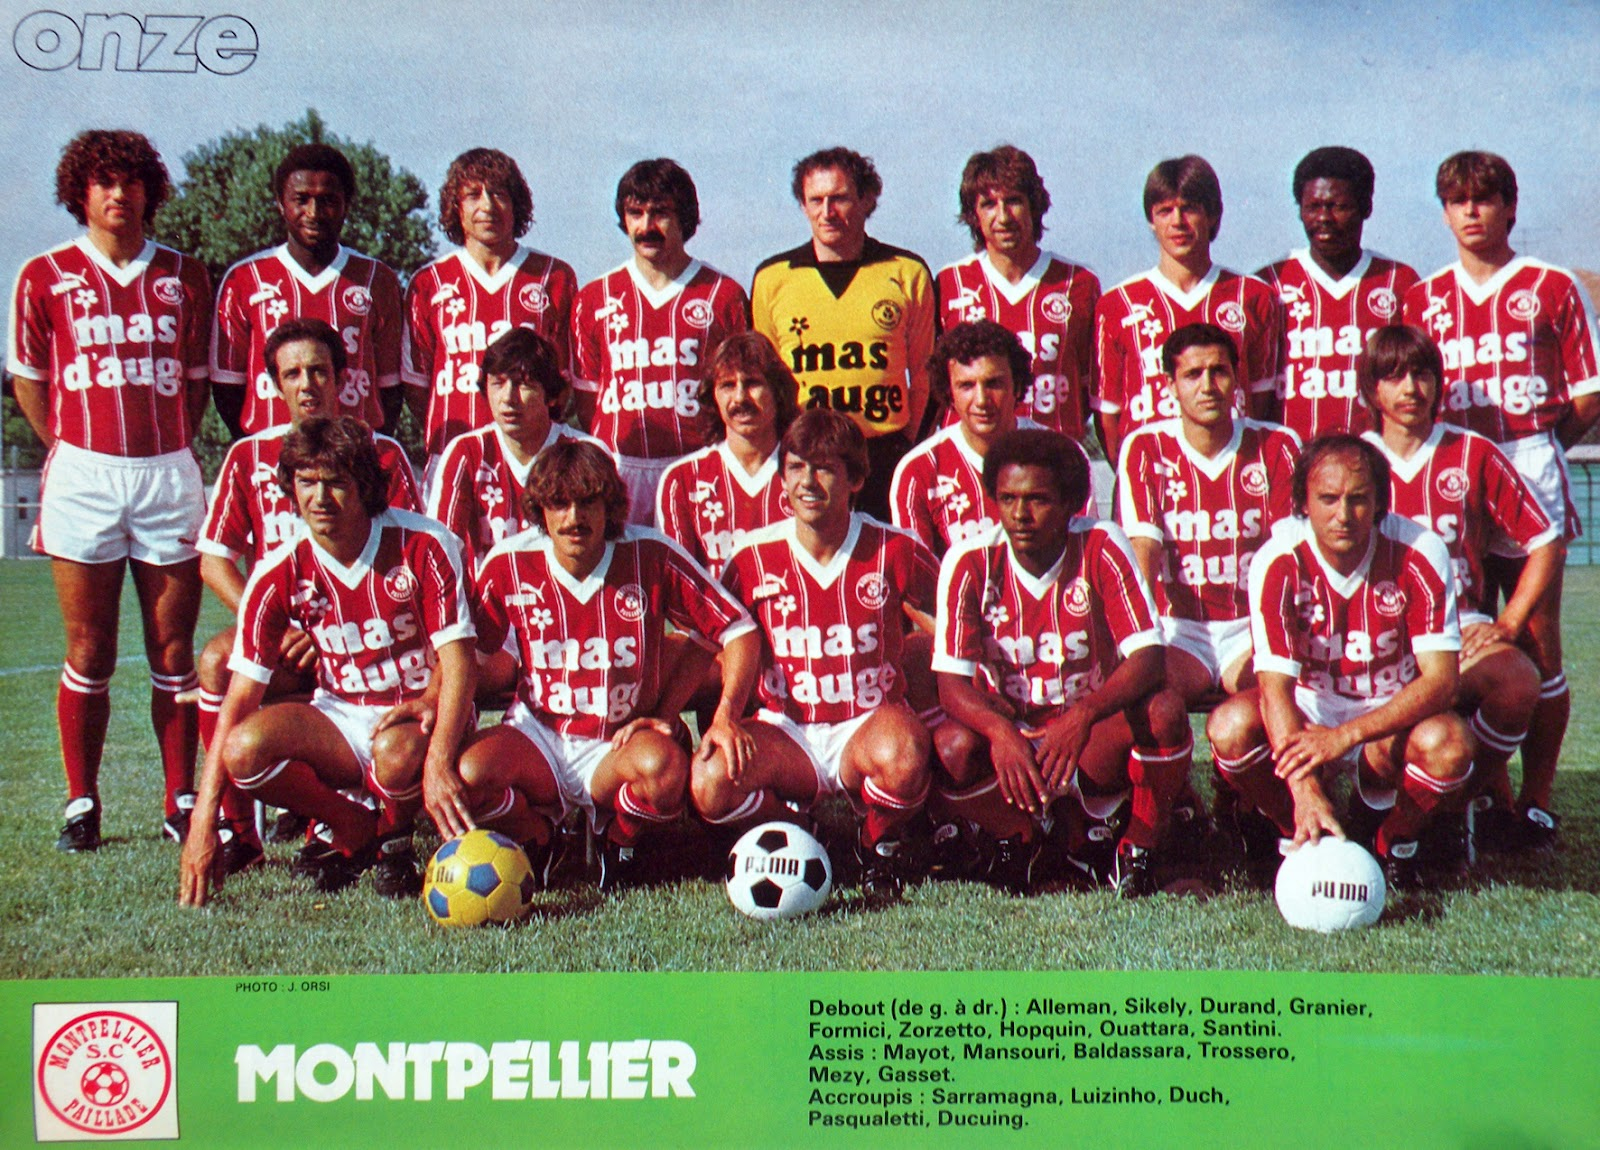 montpellier la paillade 198182 by panini the vintage